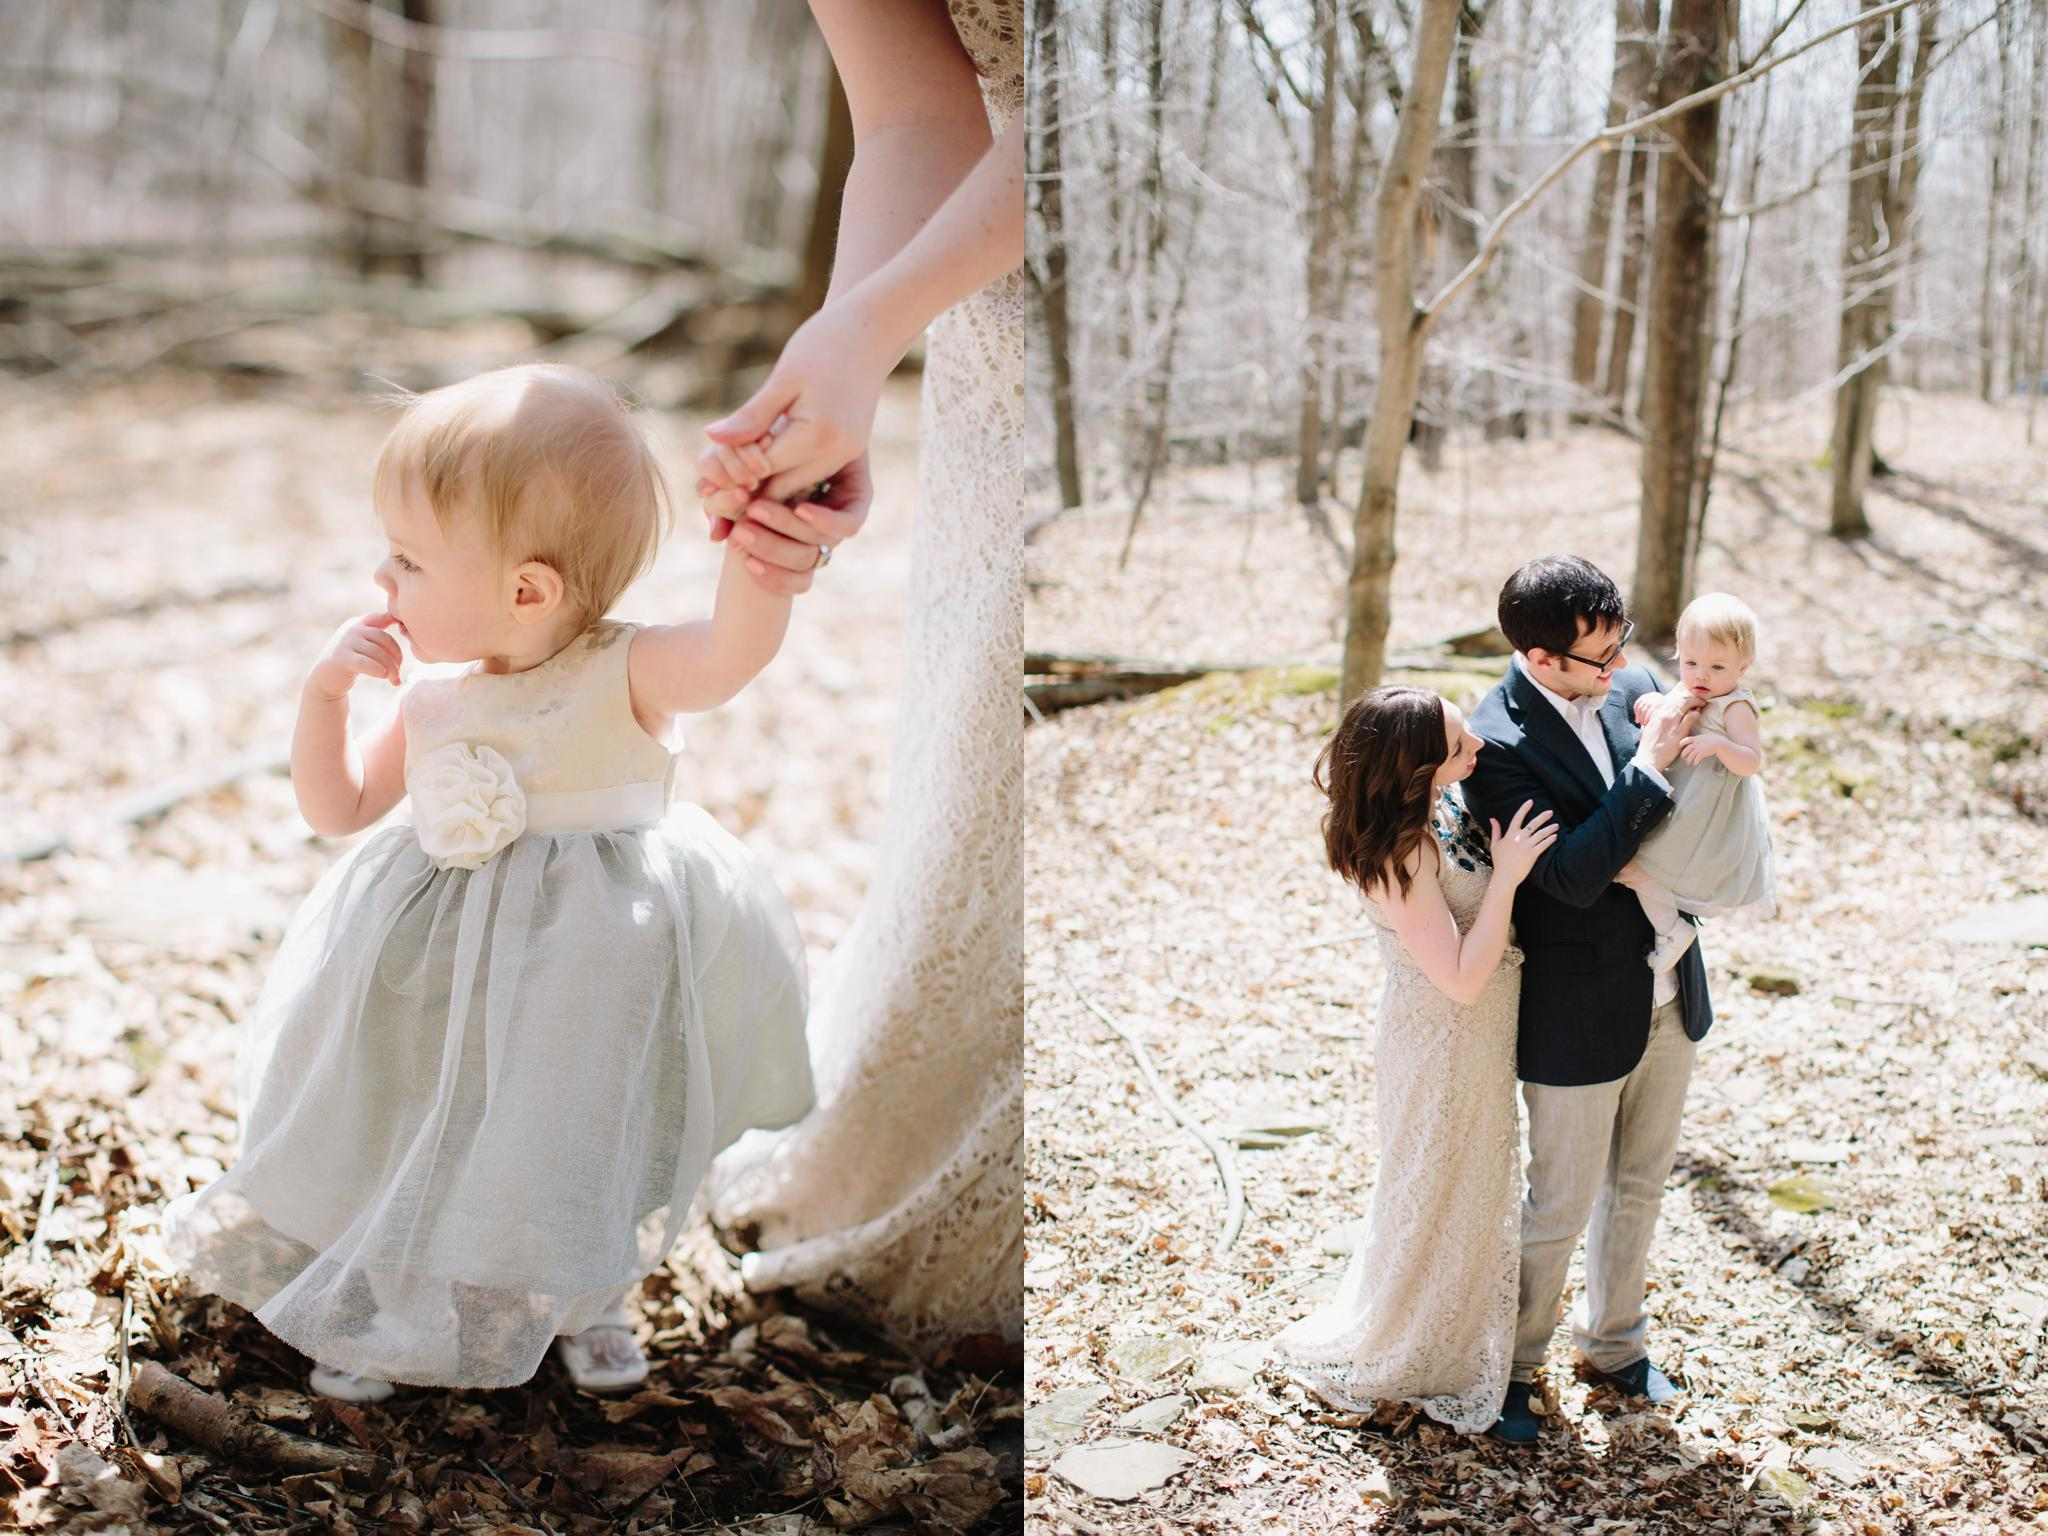 Family_Session_Tierney_Cyanne_Photography_5476.jpg